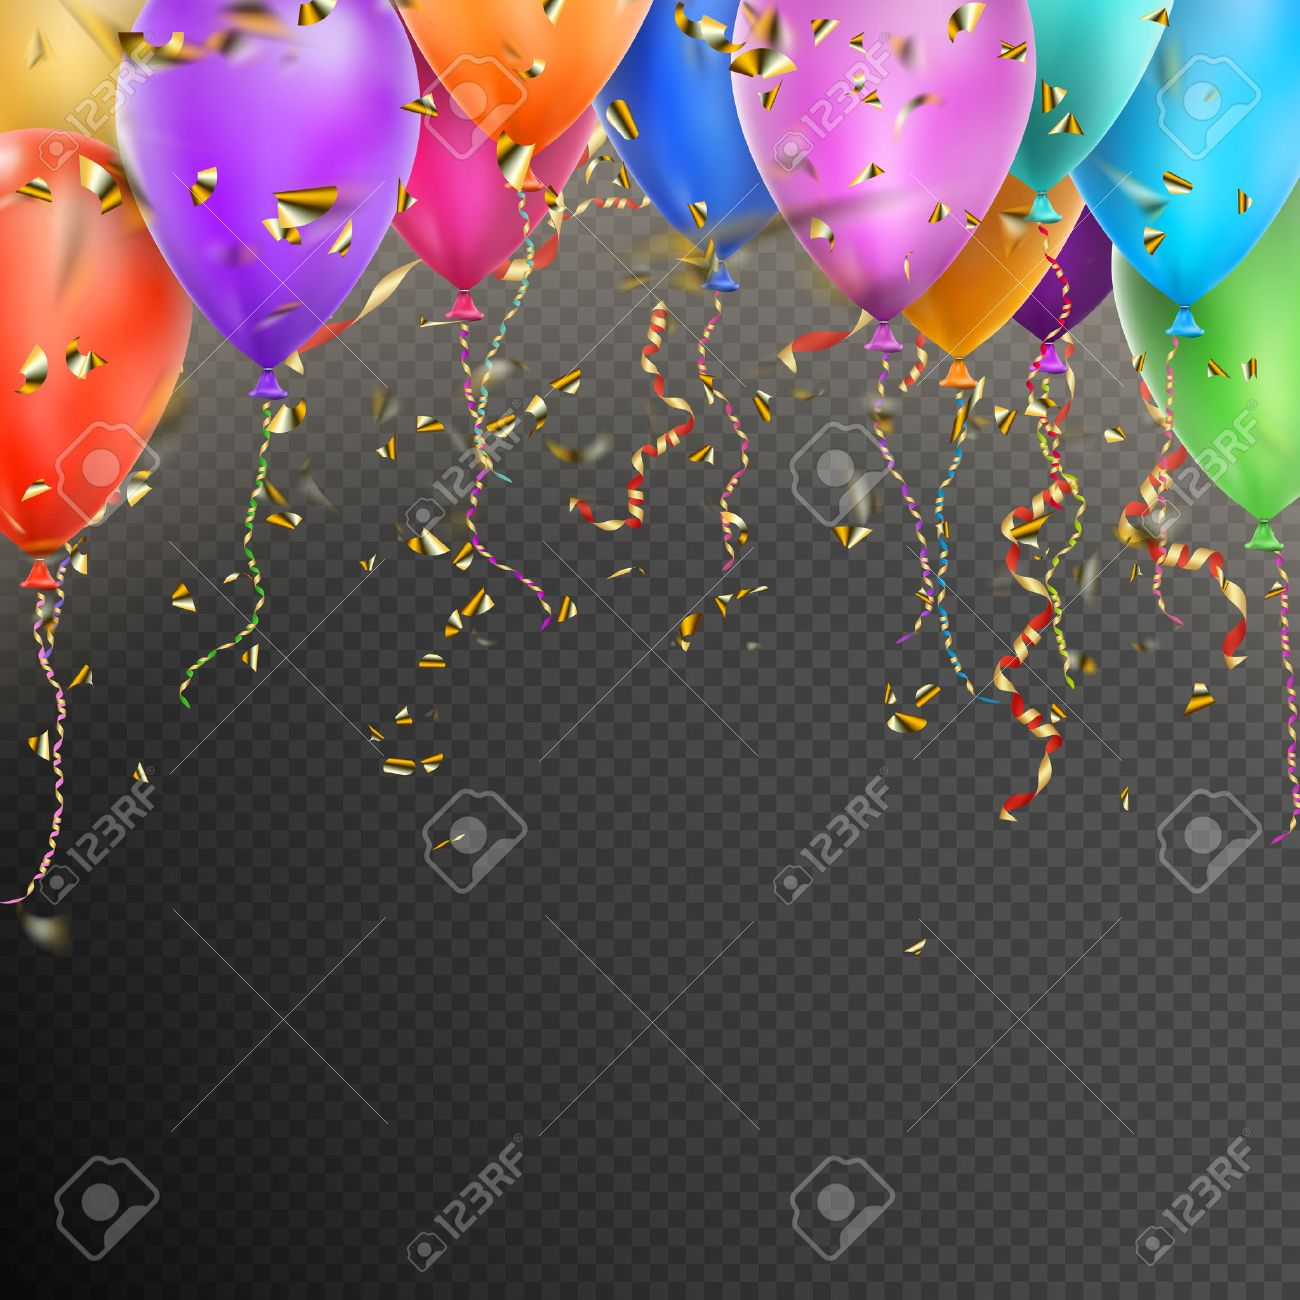 Celebration background template with balloons, confetti and red gold ribbons on transparent background. vector file included - 58155782